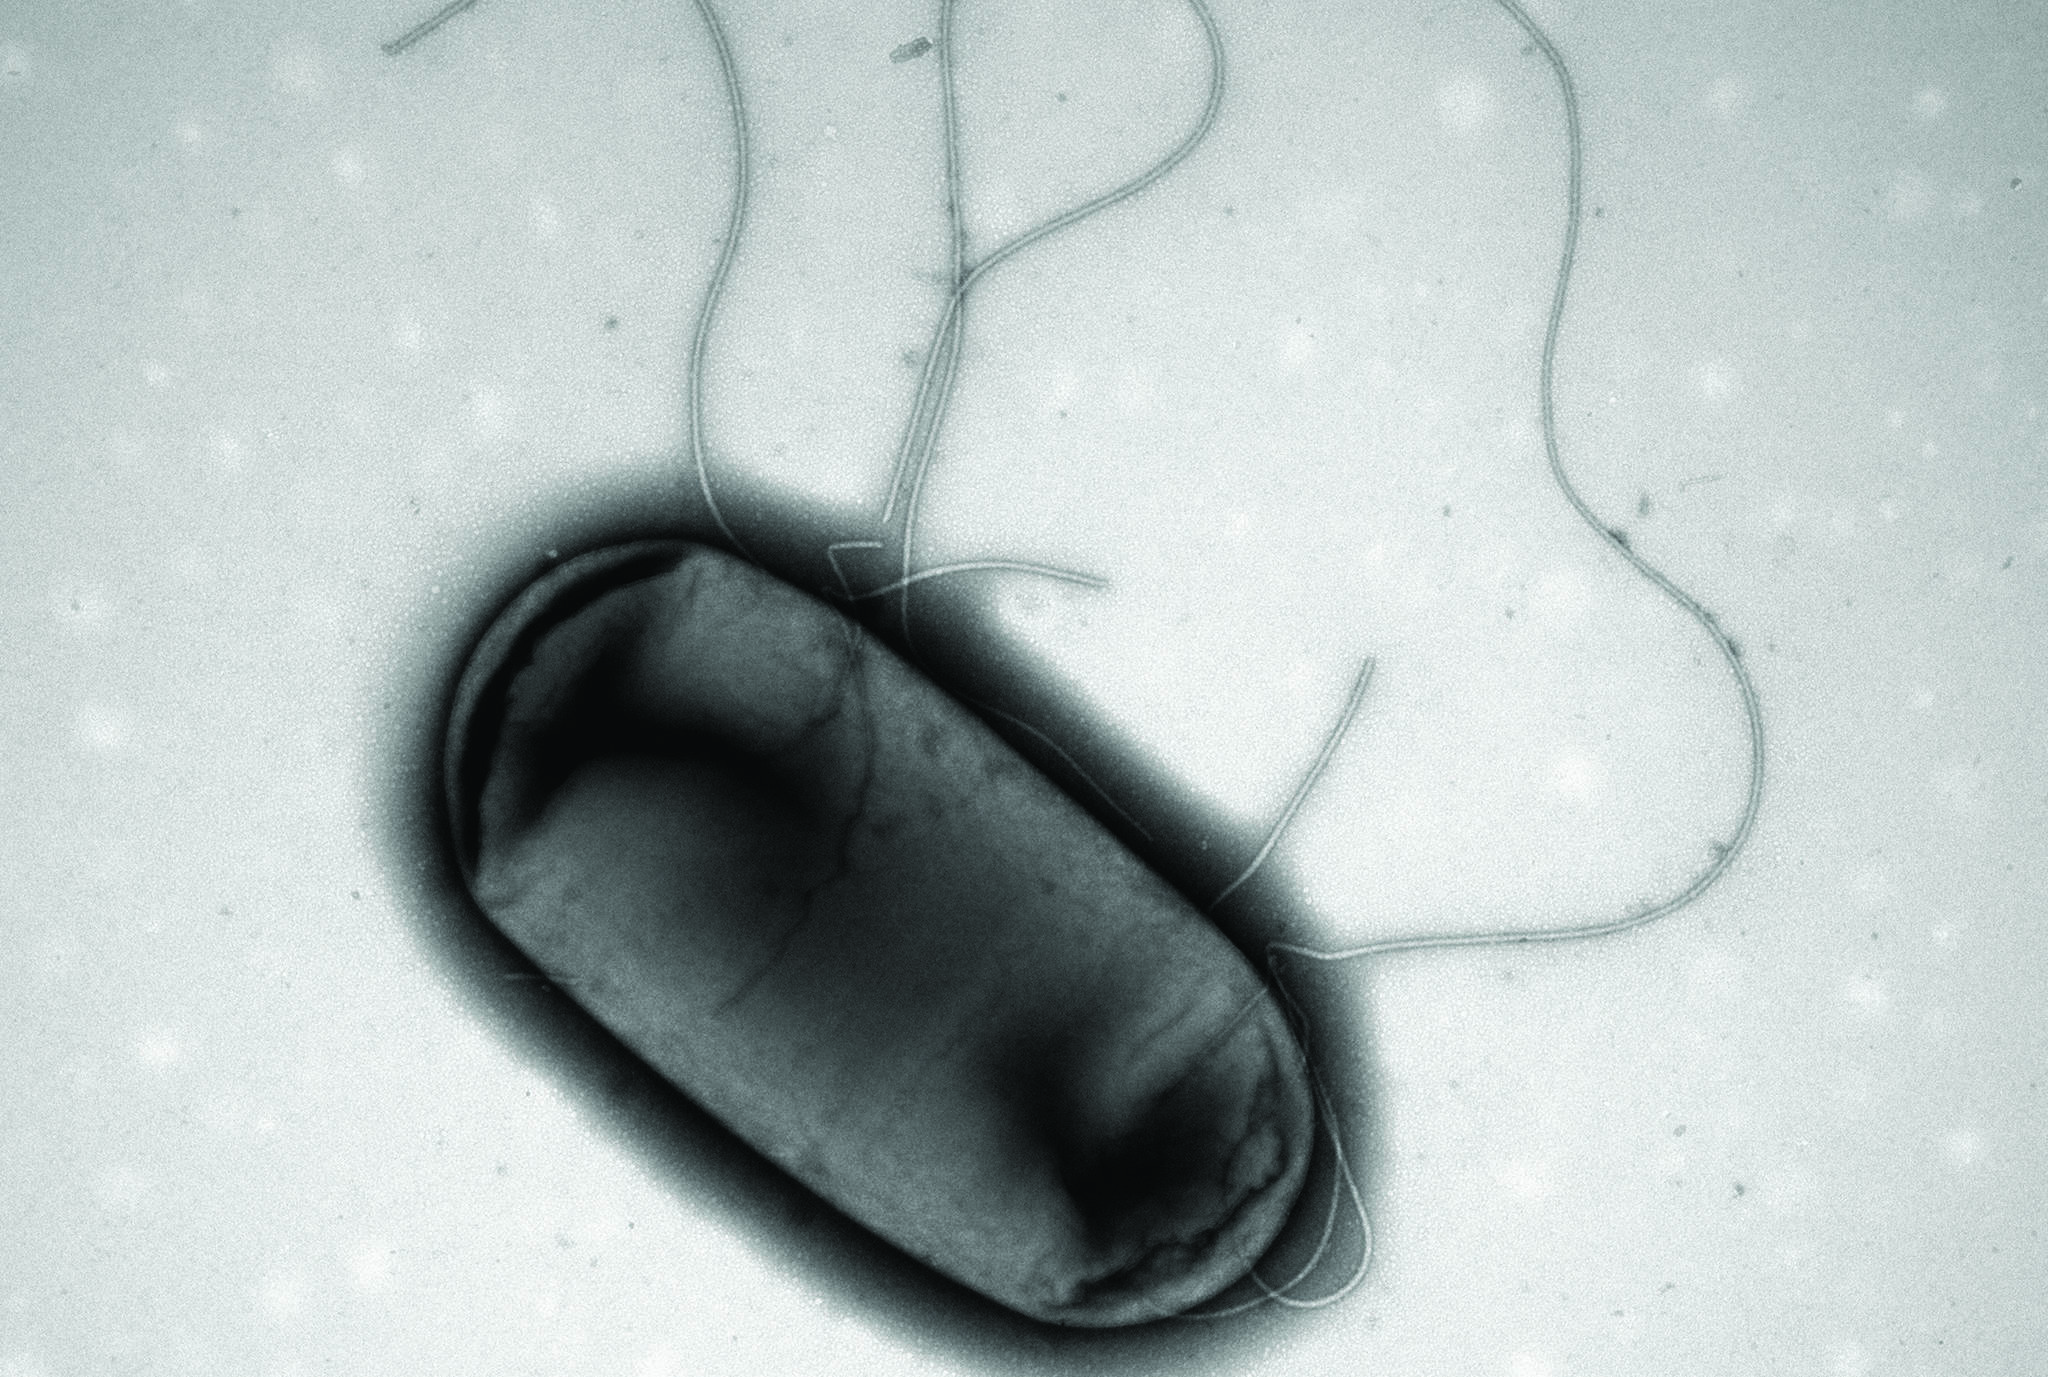 Electron micrograph image of E.coli is shown in a handout photo. MCR-1, a gene that makes bacteria resistant to the killing effects of antibiotics, has been detected in stored samples of E. coli collected in 2010 in Canada. Now scientists are wondering if the superbug gene had made its way into Canada even earlier - and just what that could mean. (THE CANADIAN PRESS/HO-Brian Coombes Laboratory, McMaster University)